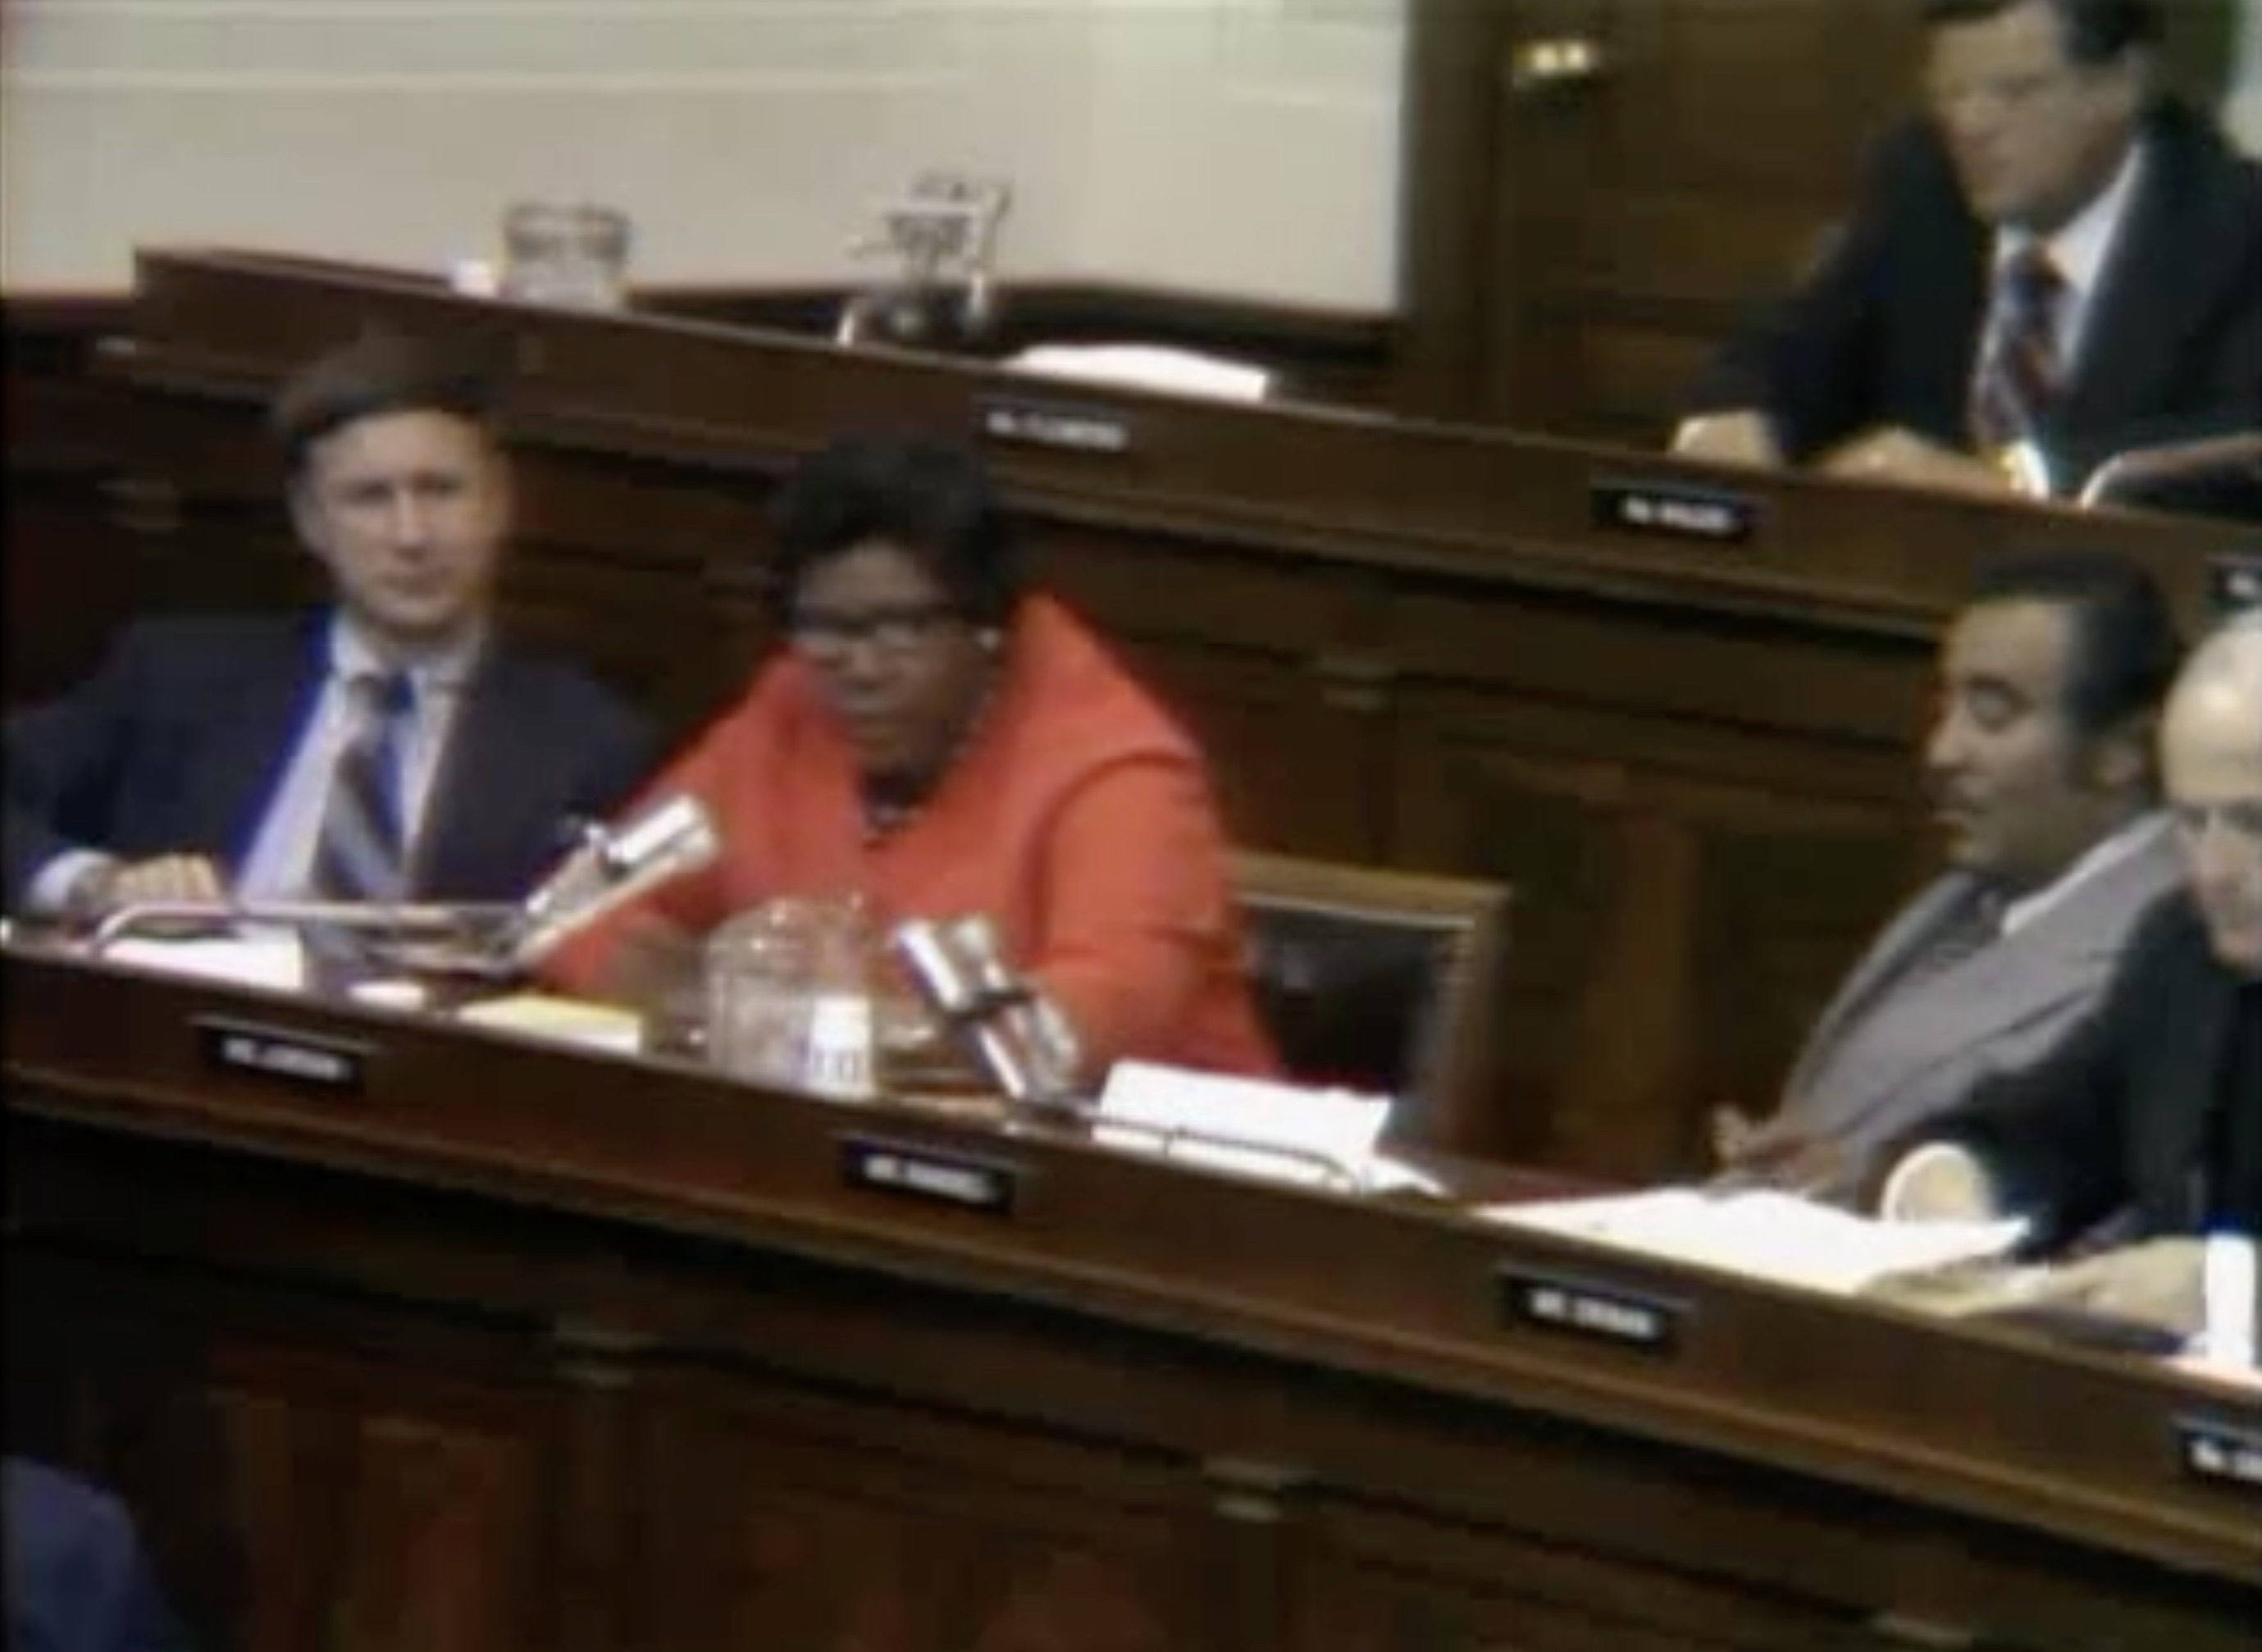 1974 Nixon Impeachment Hearings; Rep. Barbara Jordan